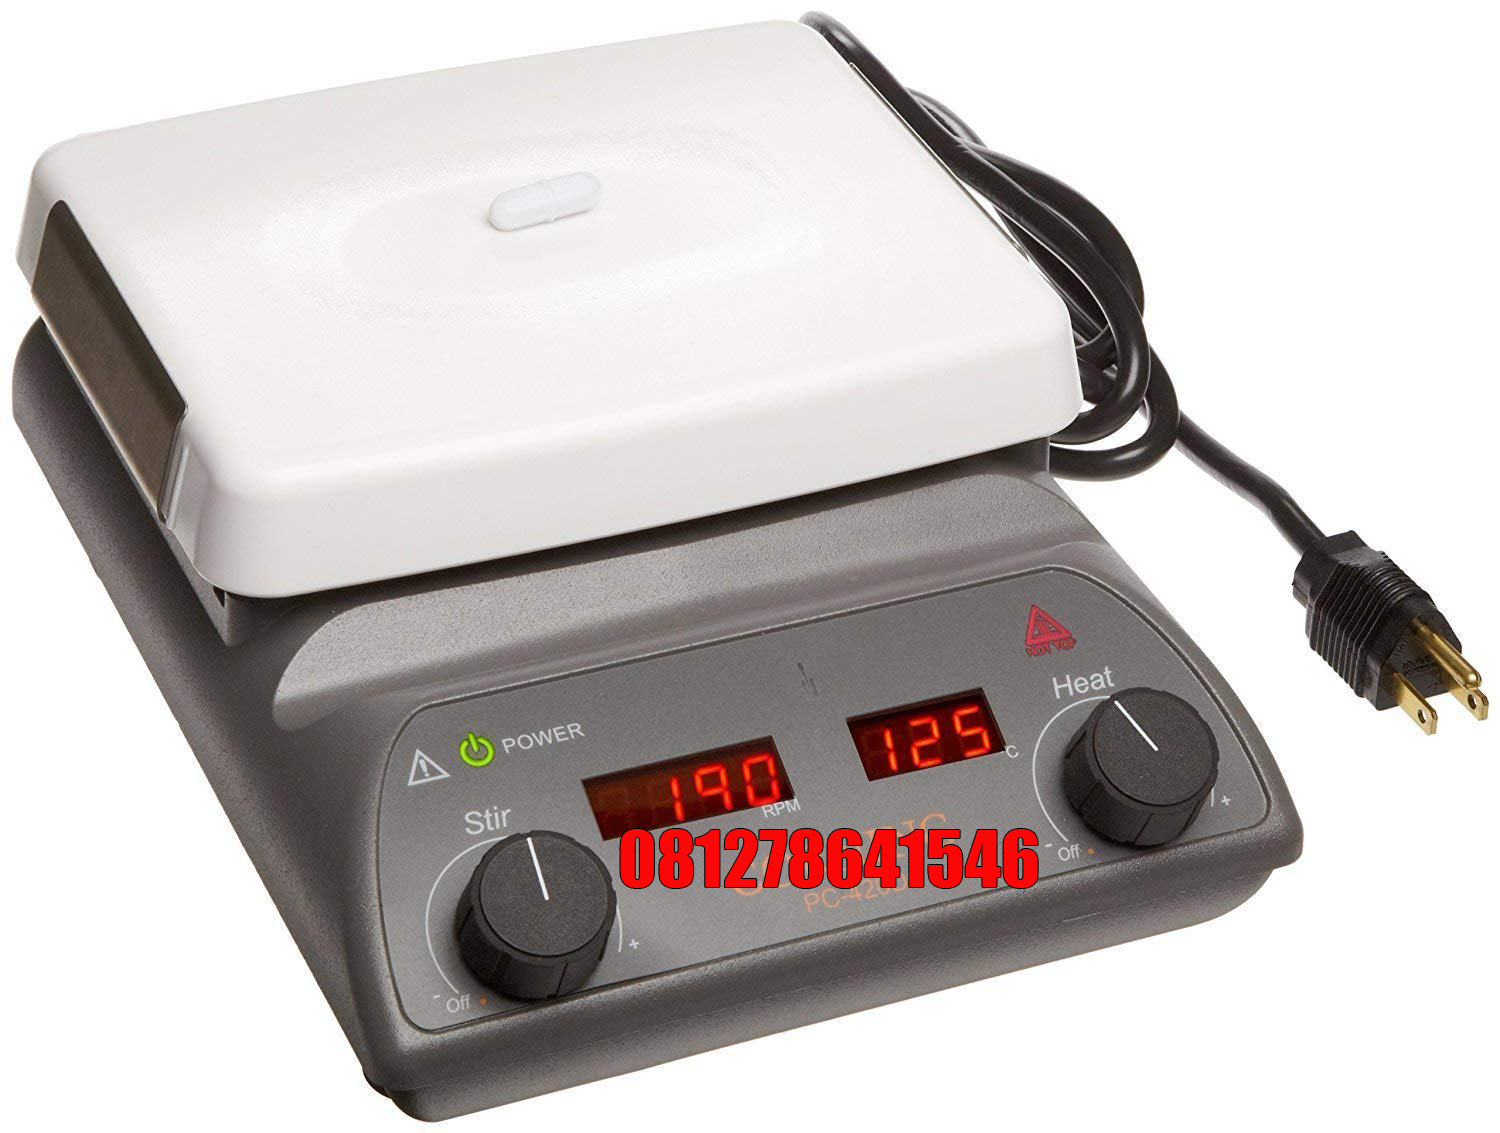 Jual CORNING PC-420D Hot Plate Magnetic Stirrer